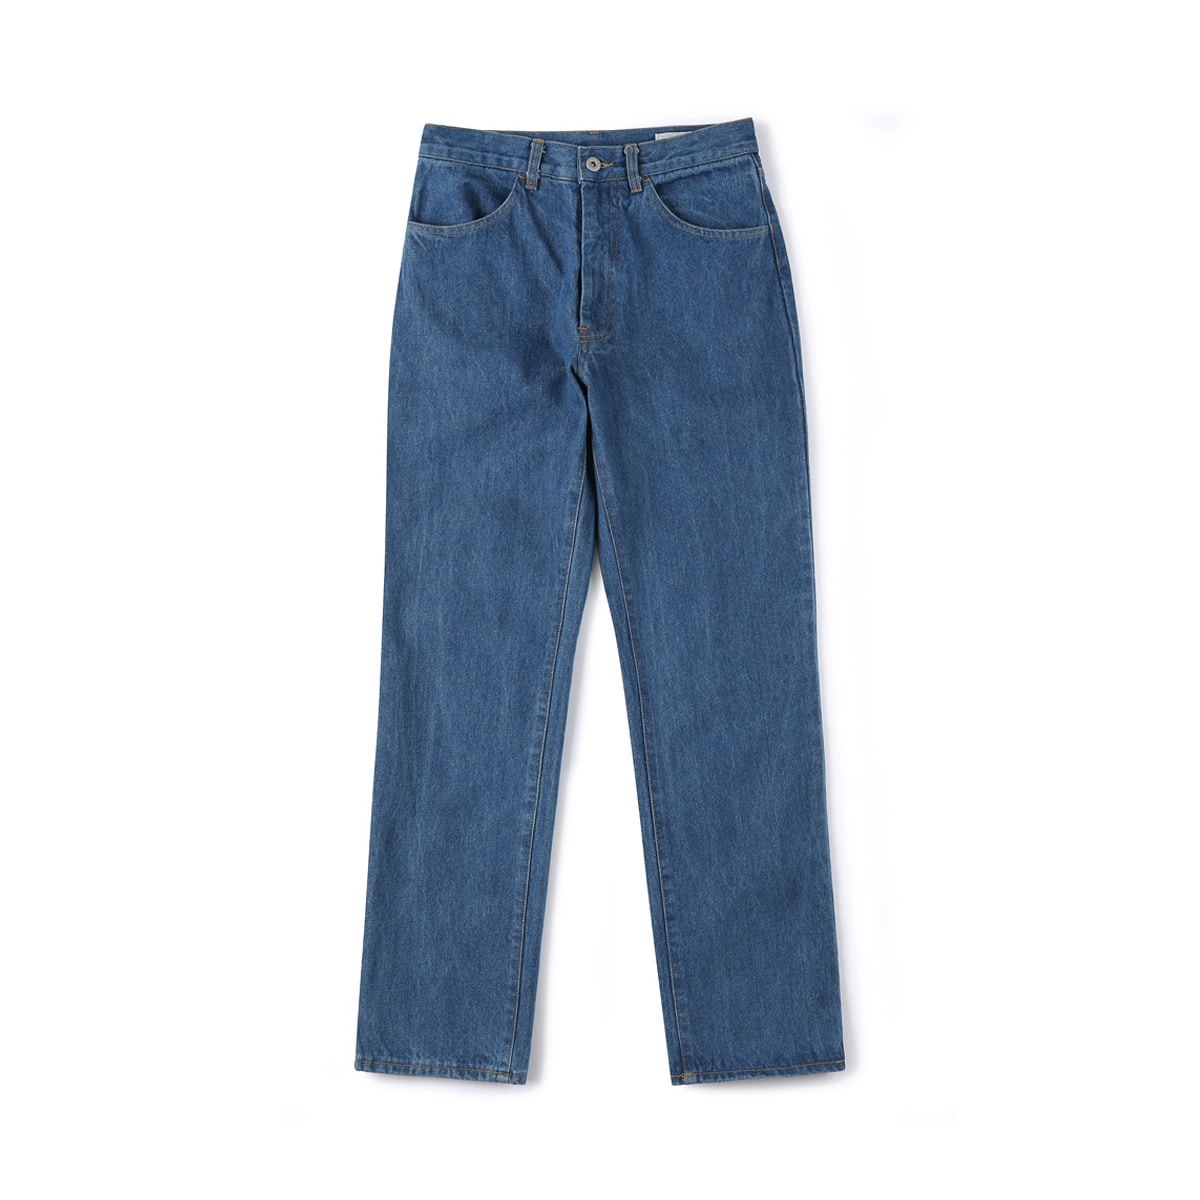 [SHIRTER] HAMILTON DENIM PANTS 'BLUE'